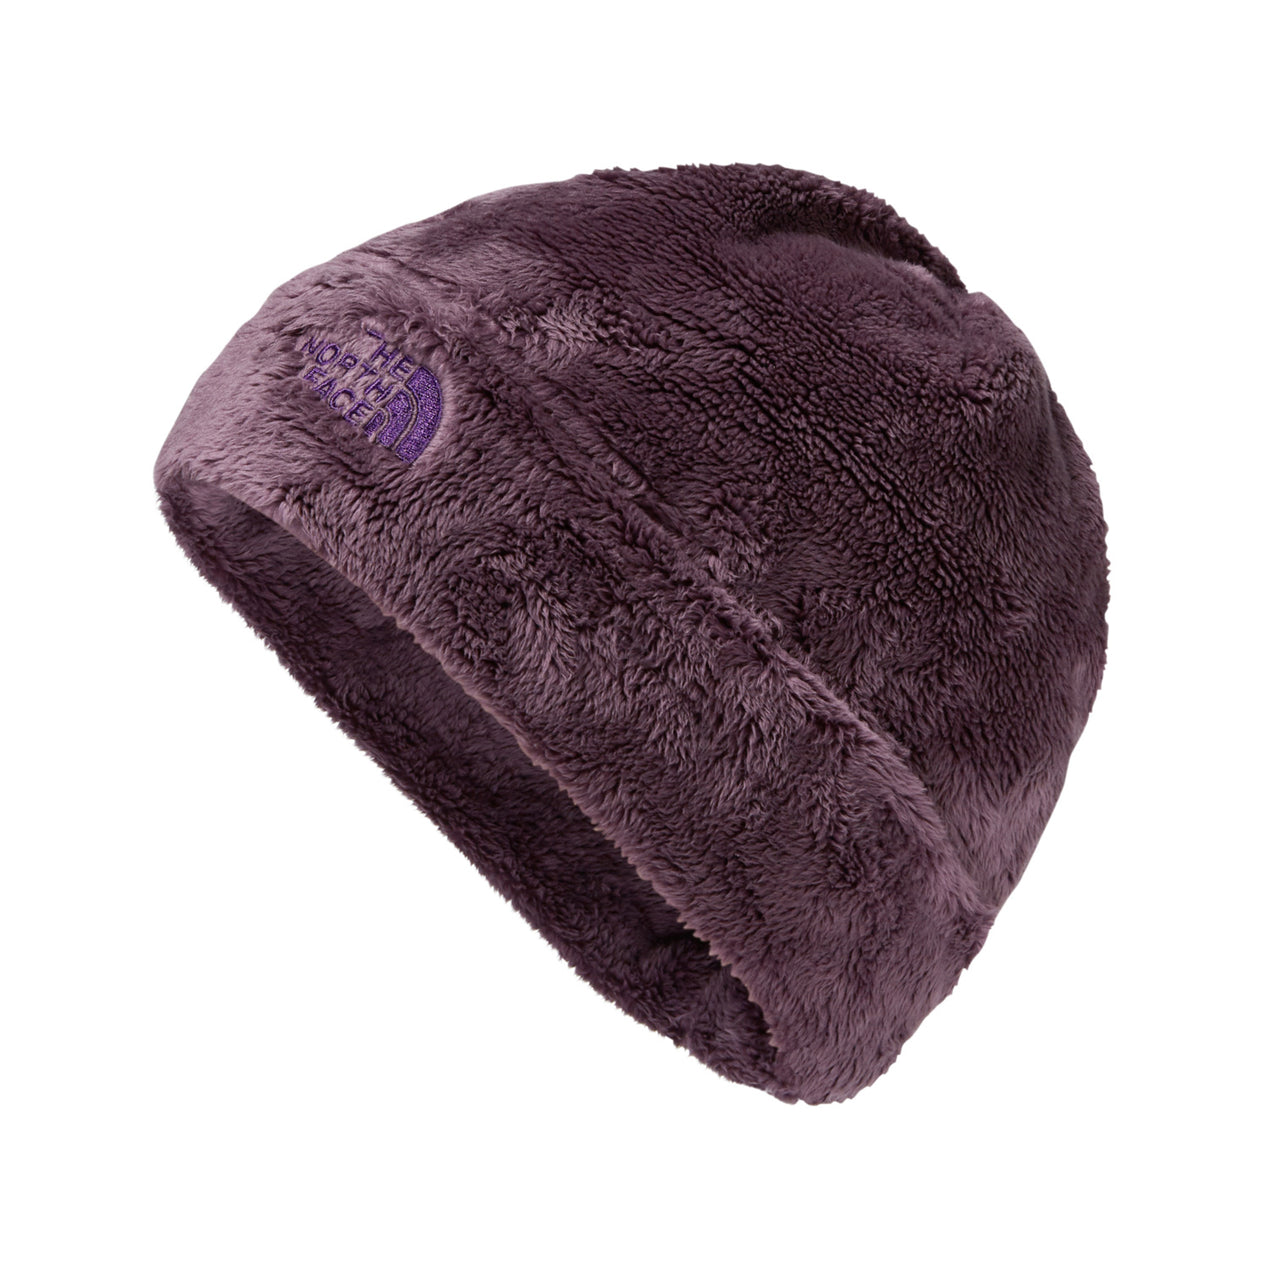 4903d466ceaef The North Face Denali Thermal Beanie